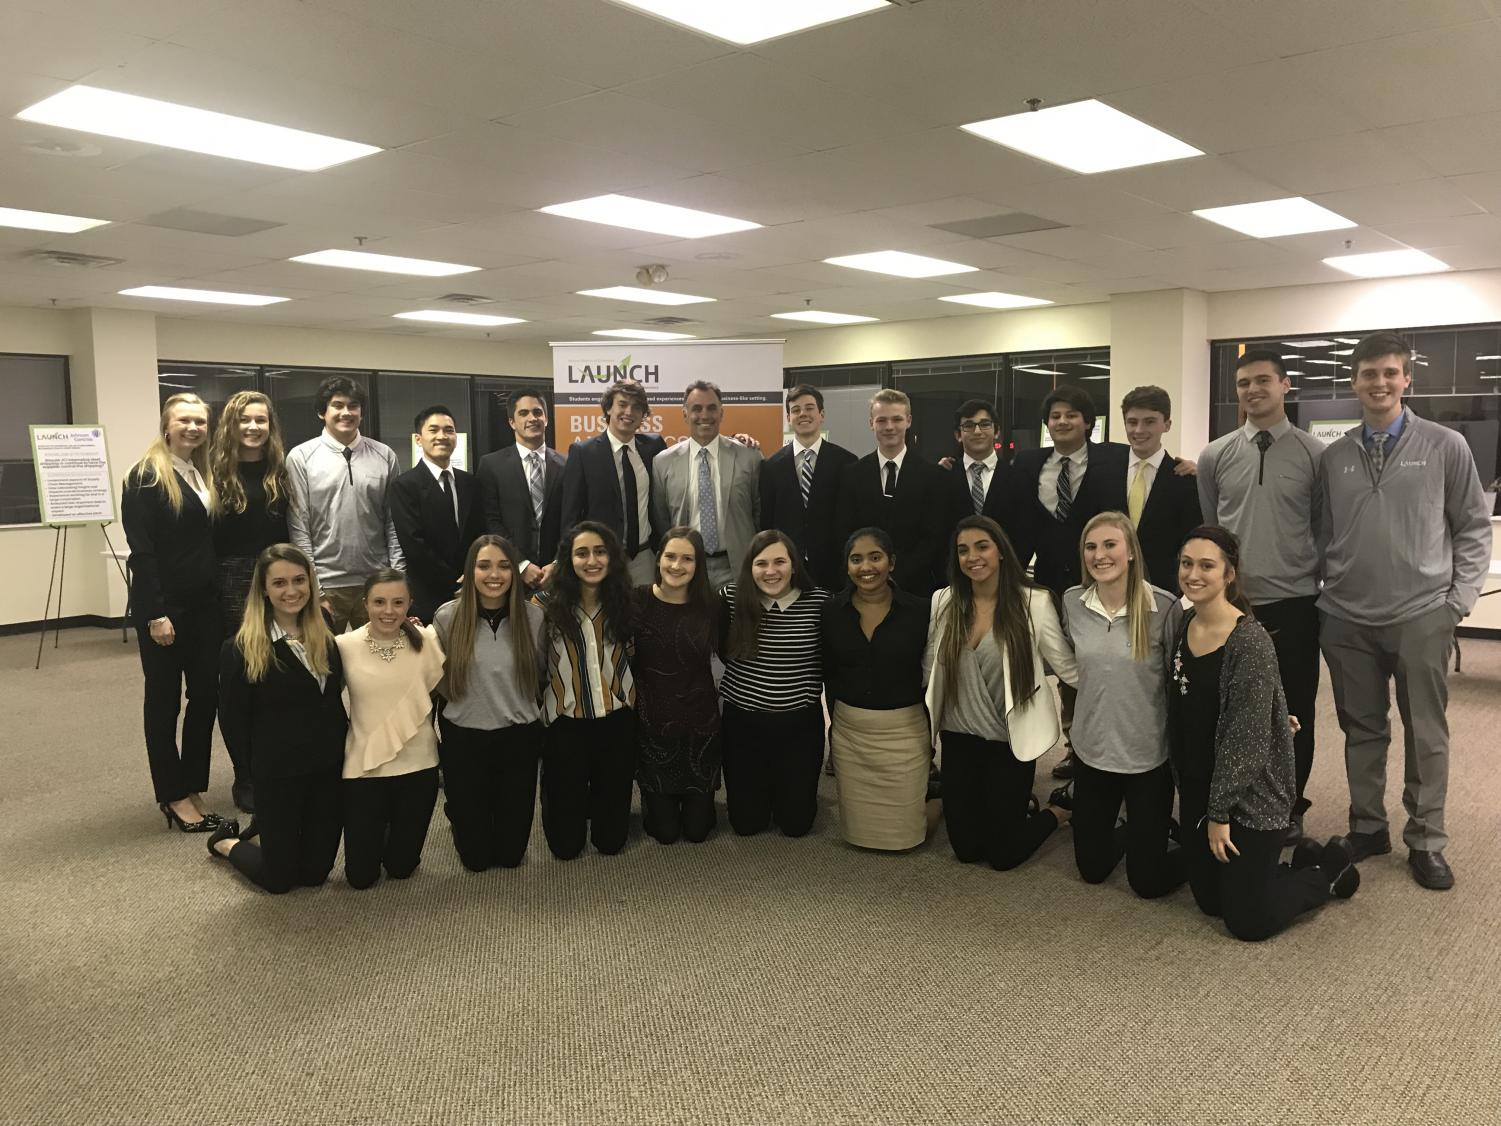 High school students from LAUNCH's 2017-2018 Business Analytics strand pose professionally for the camera after completing autumn project.